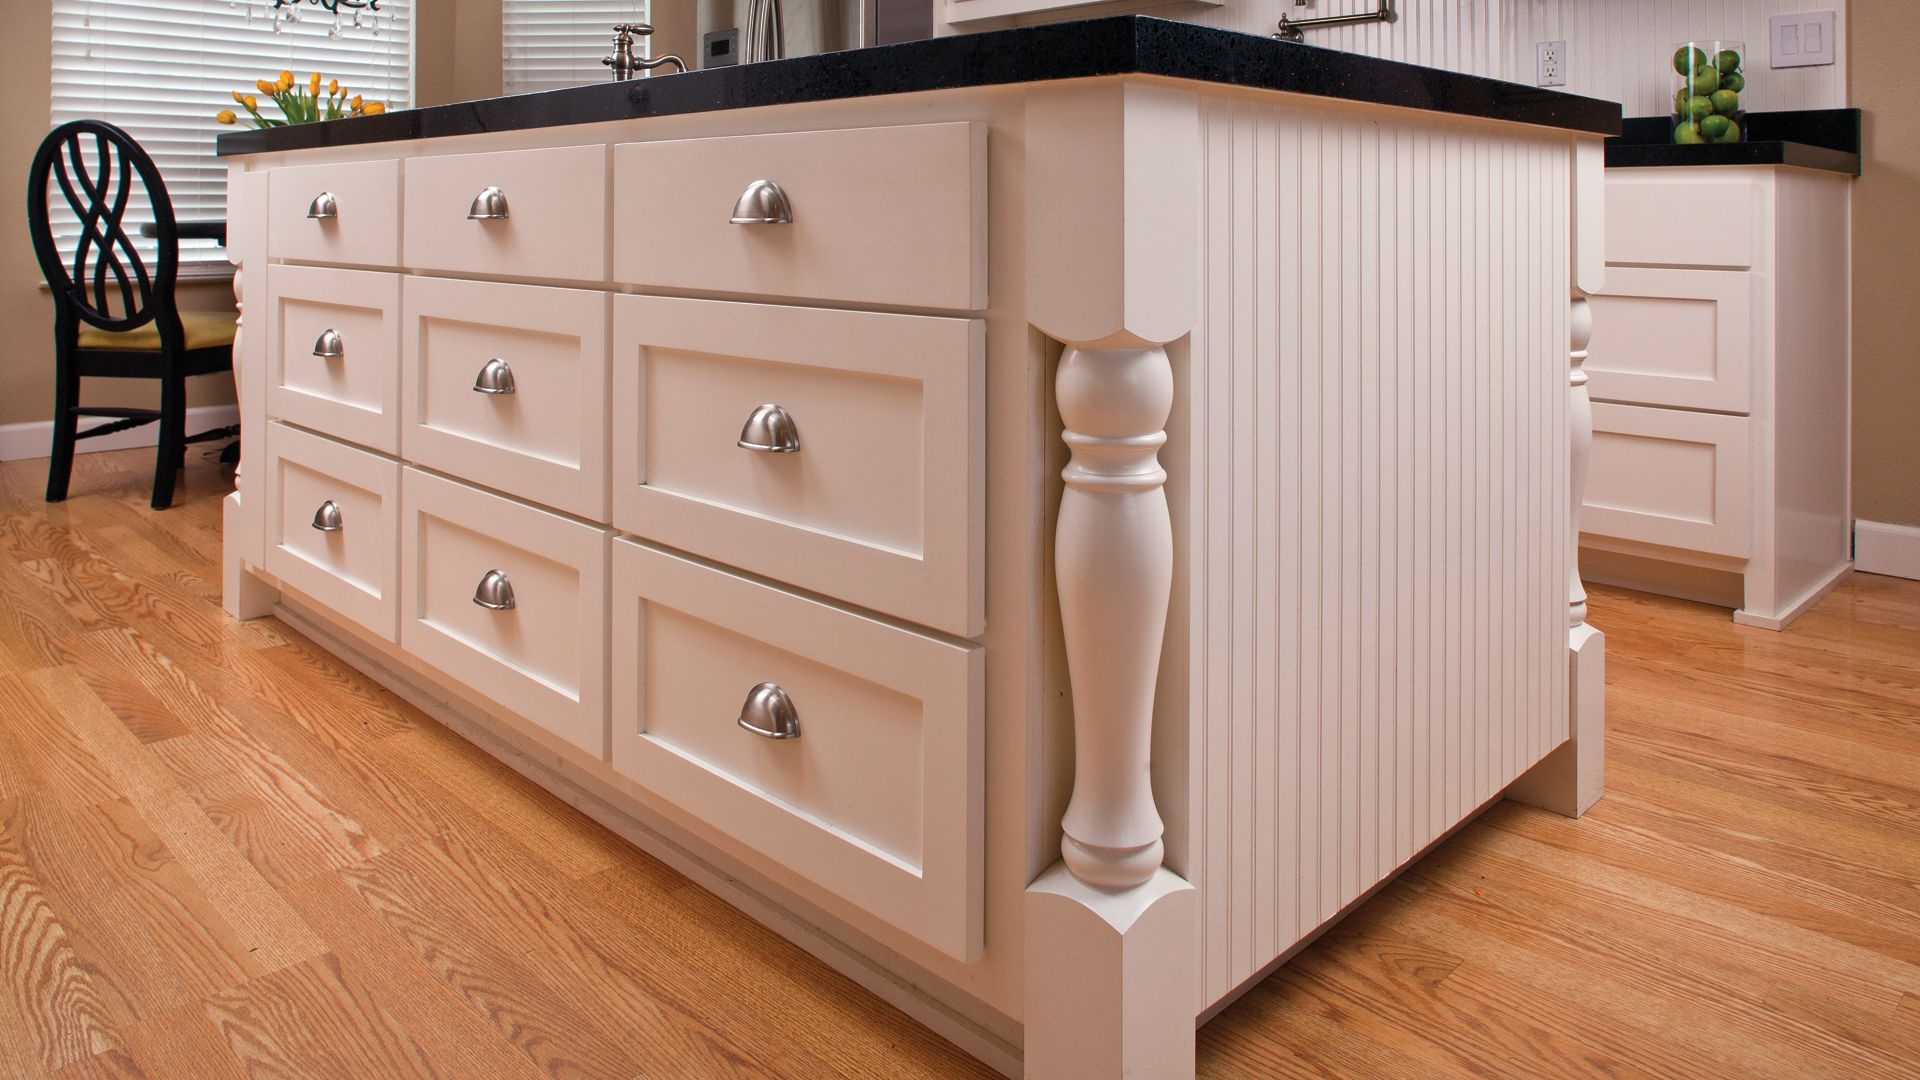 Refacing Kitchen Cabinets And Drawers1920 X 1080